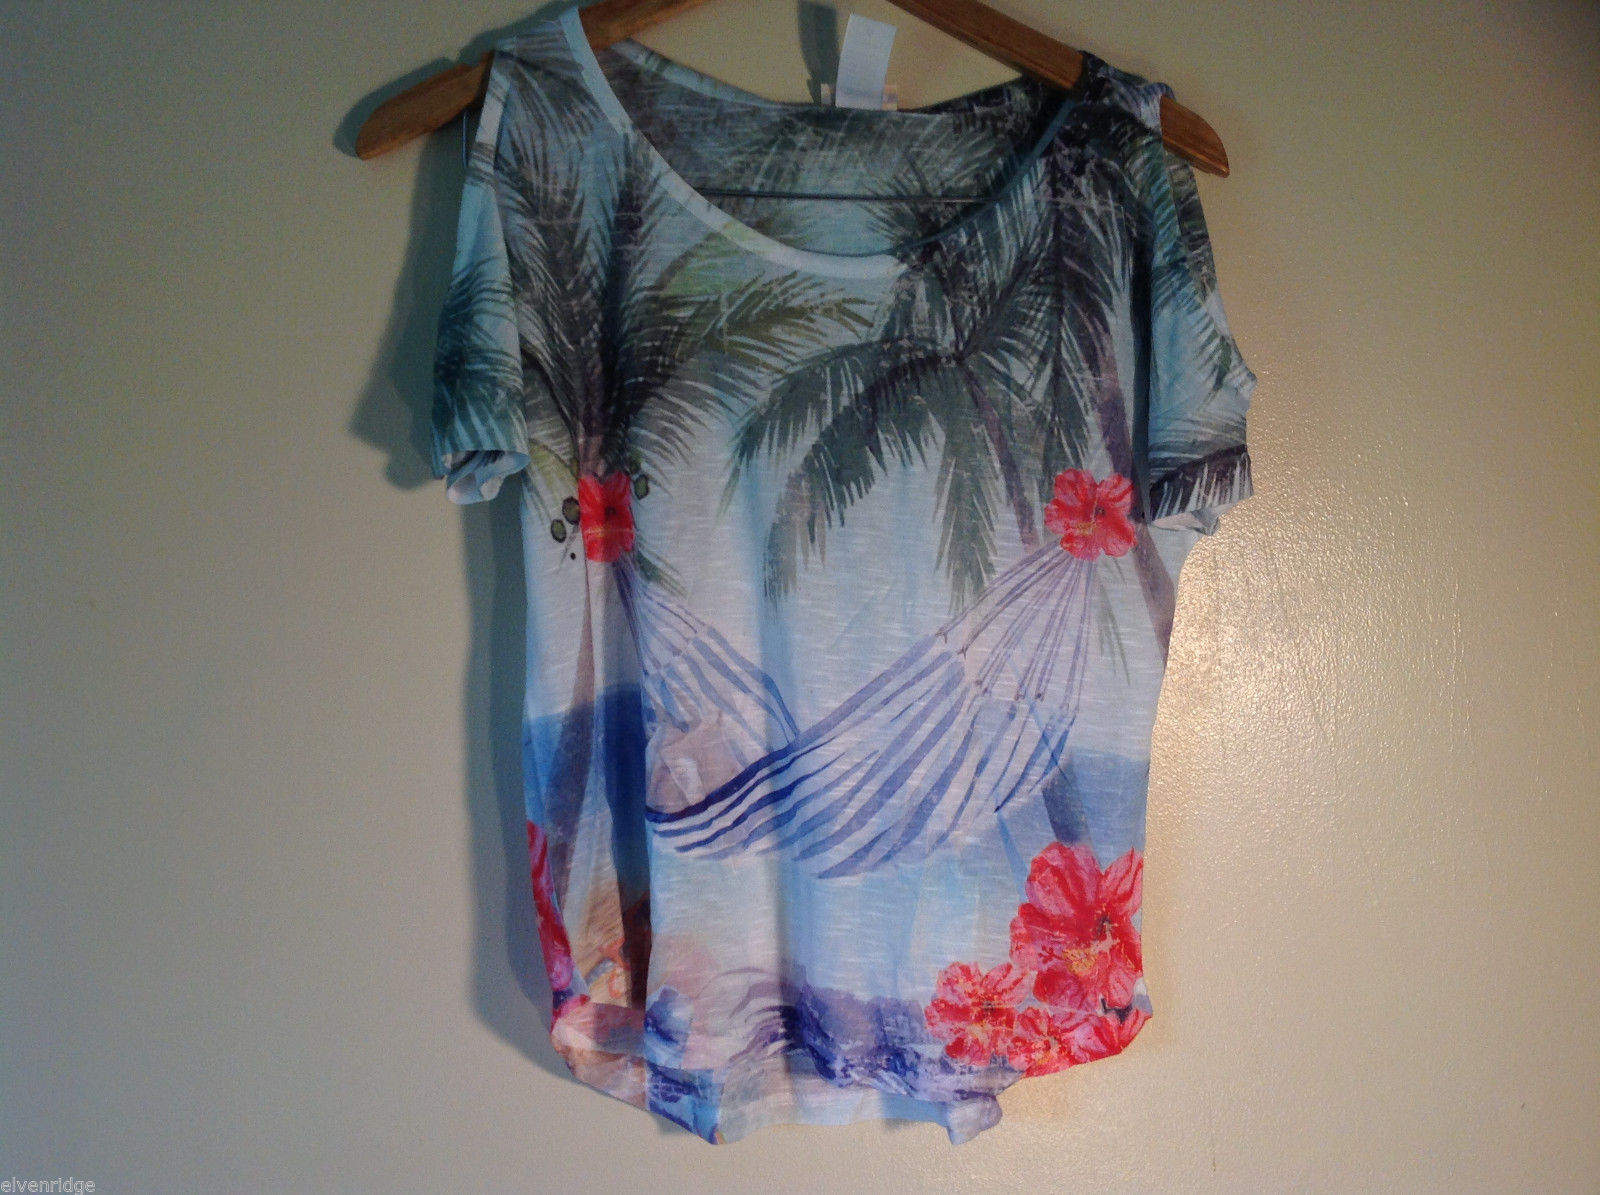 NEW Womens Size M Sunshirt tshirt Open Shoulders Hammock Made in USA